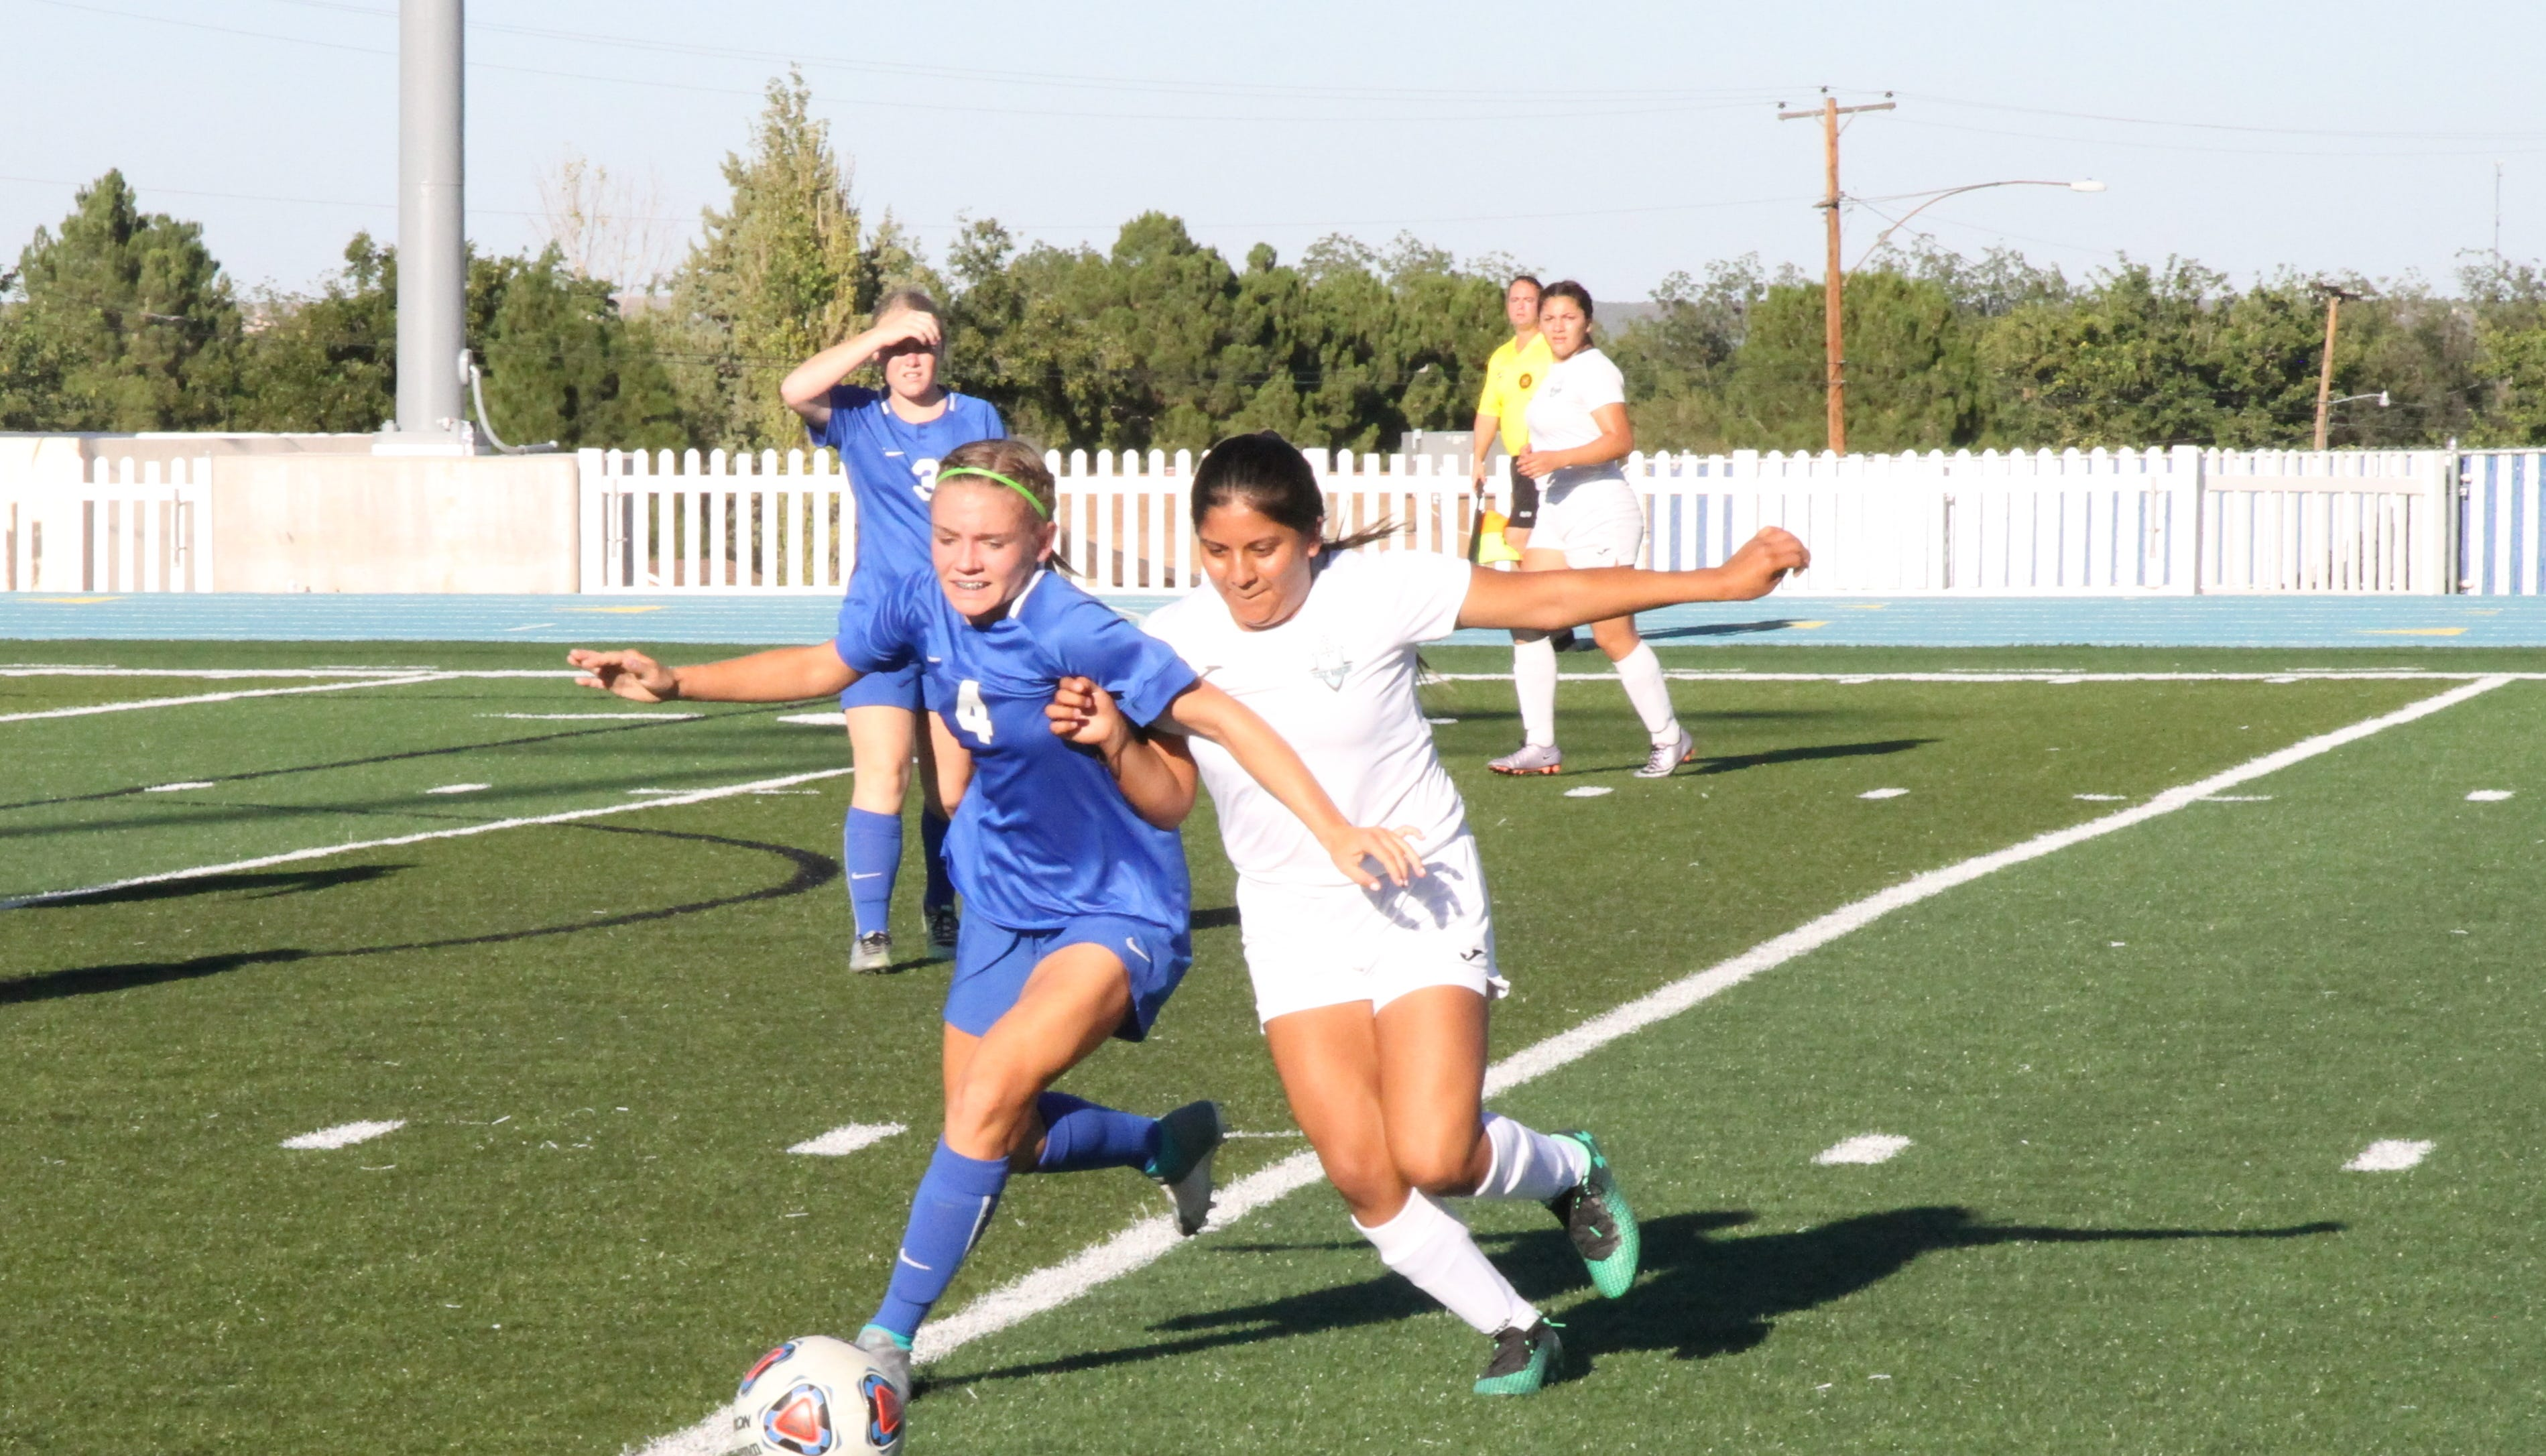 Alexa Dugan fights for possession during Saturday's game against Santa Teresa at Caveman Stadium. Dugan finished the game with one goal and one assist.